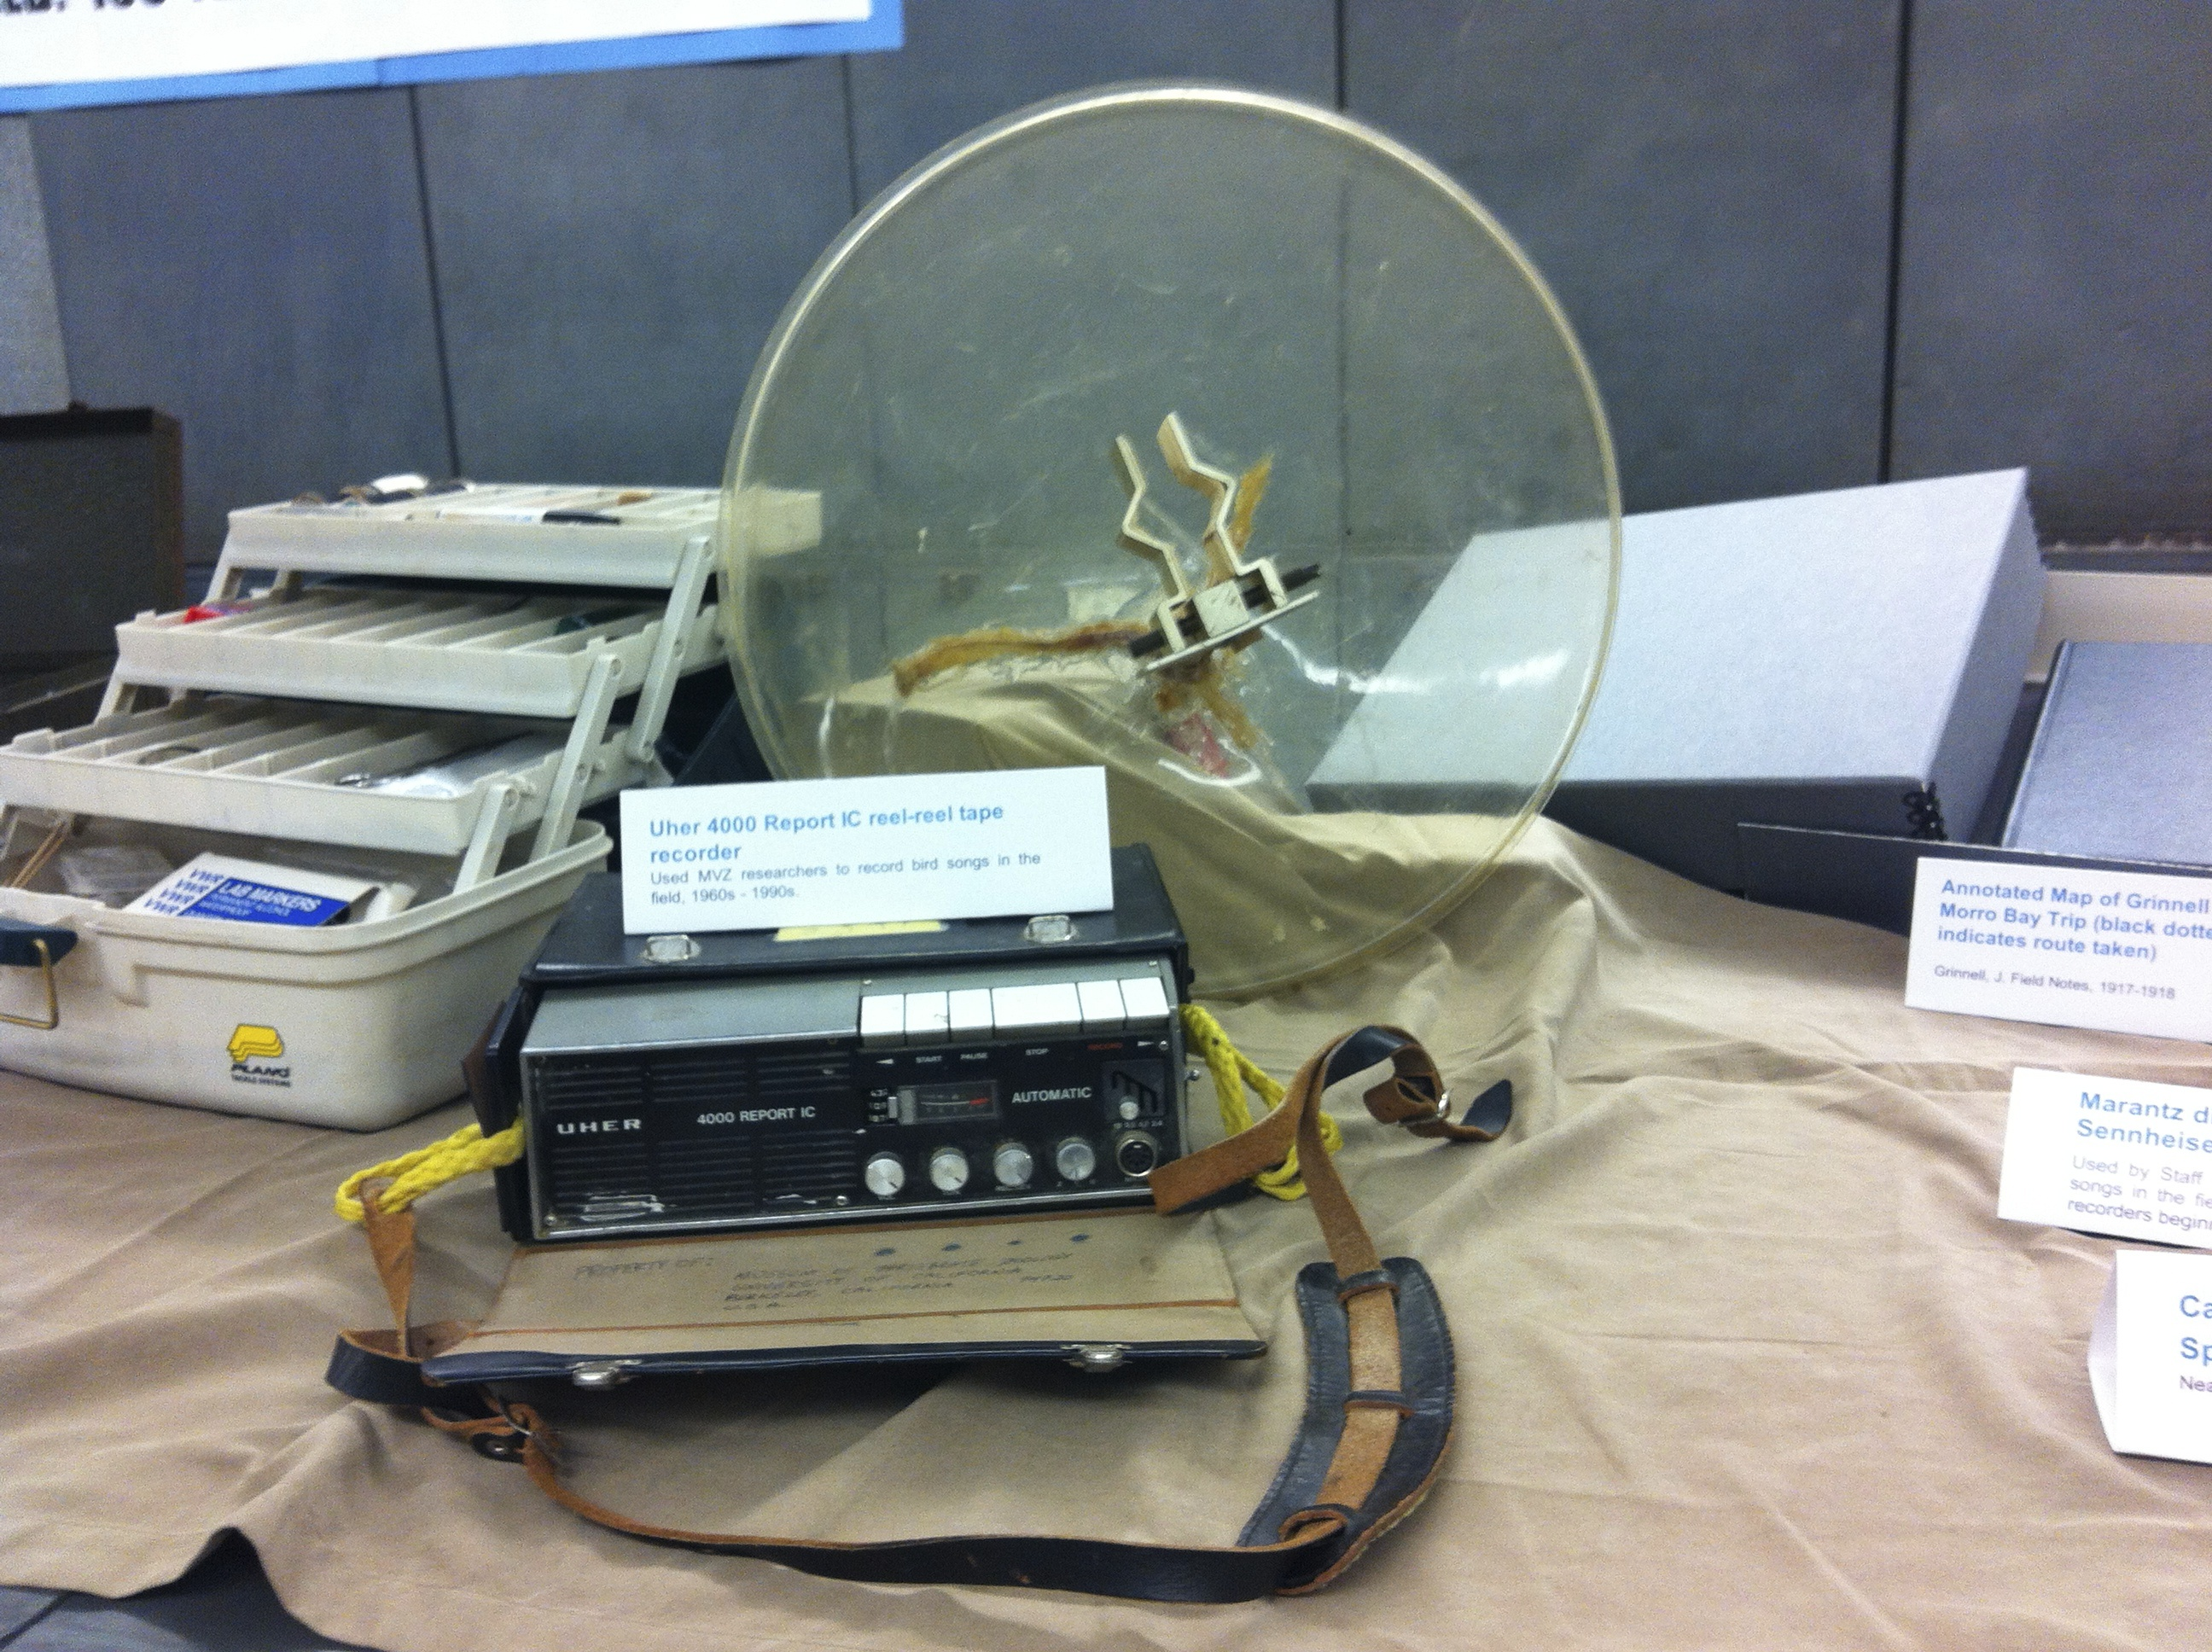 A Uher 4000 Report IC reel-reel tape recorder, used by MVZ researchers to record bird songs in the field from the 1960s to the 1990s.